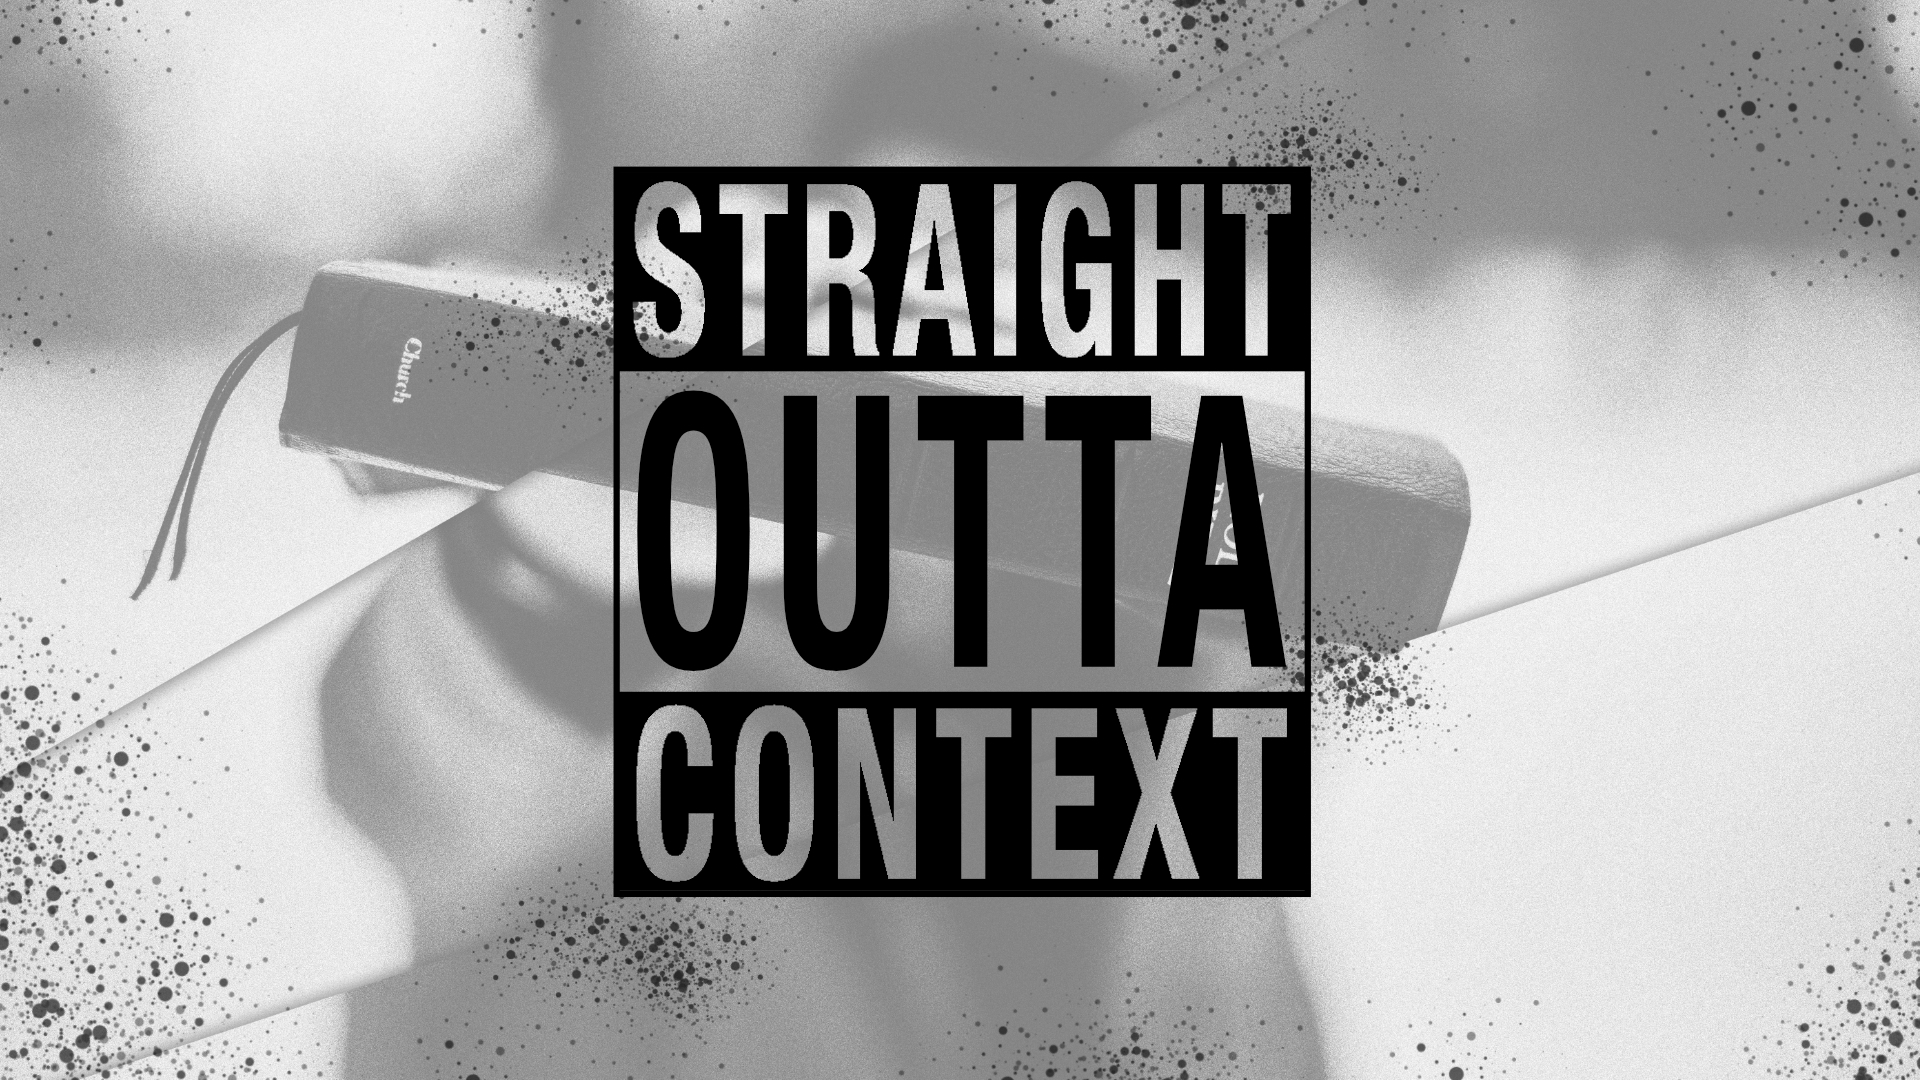 Straight Outta Context: The Way is the Will